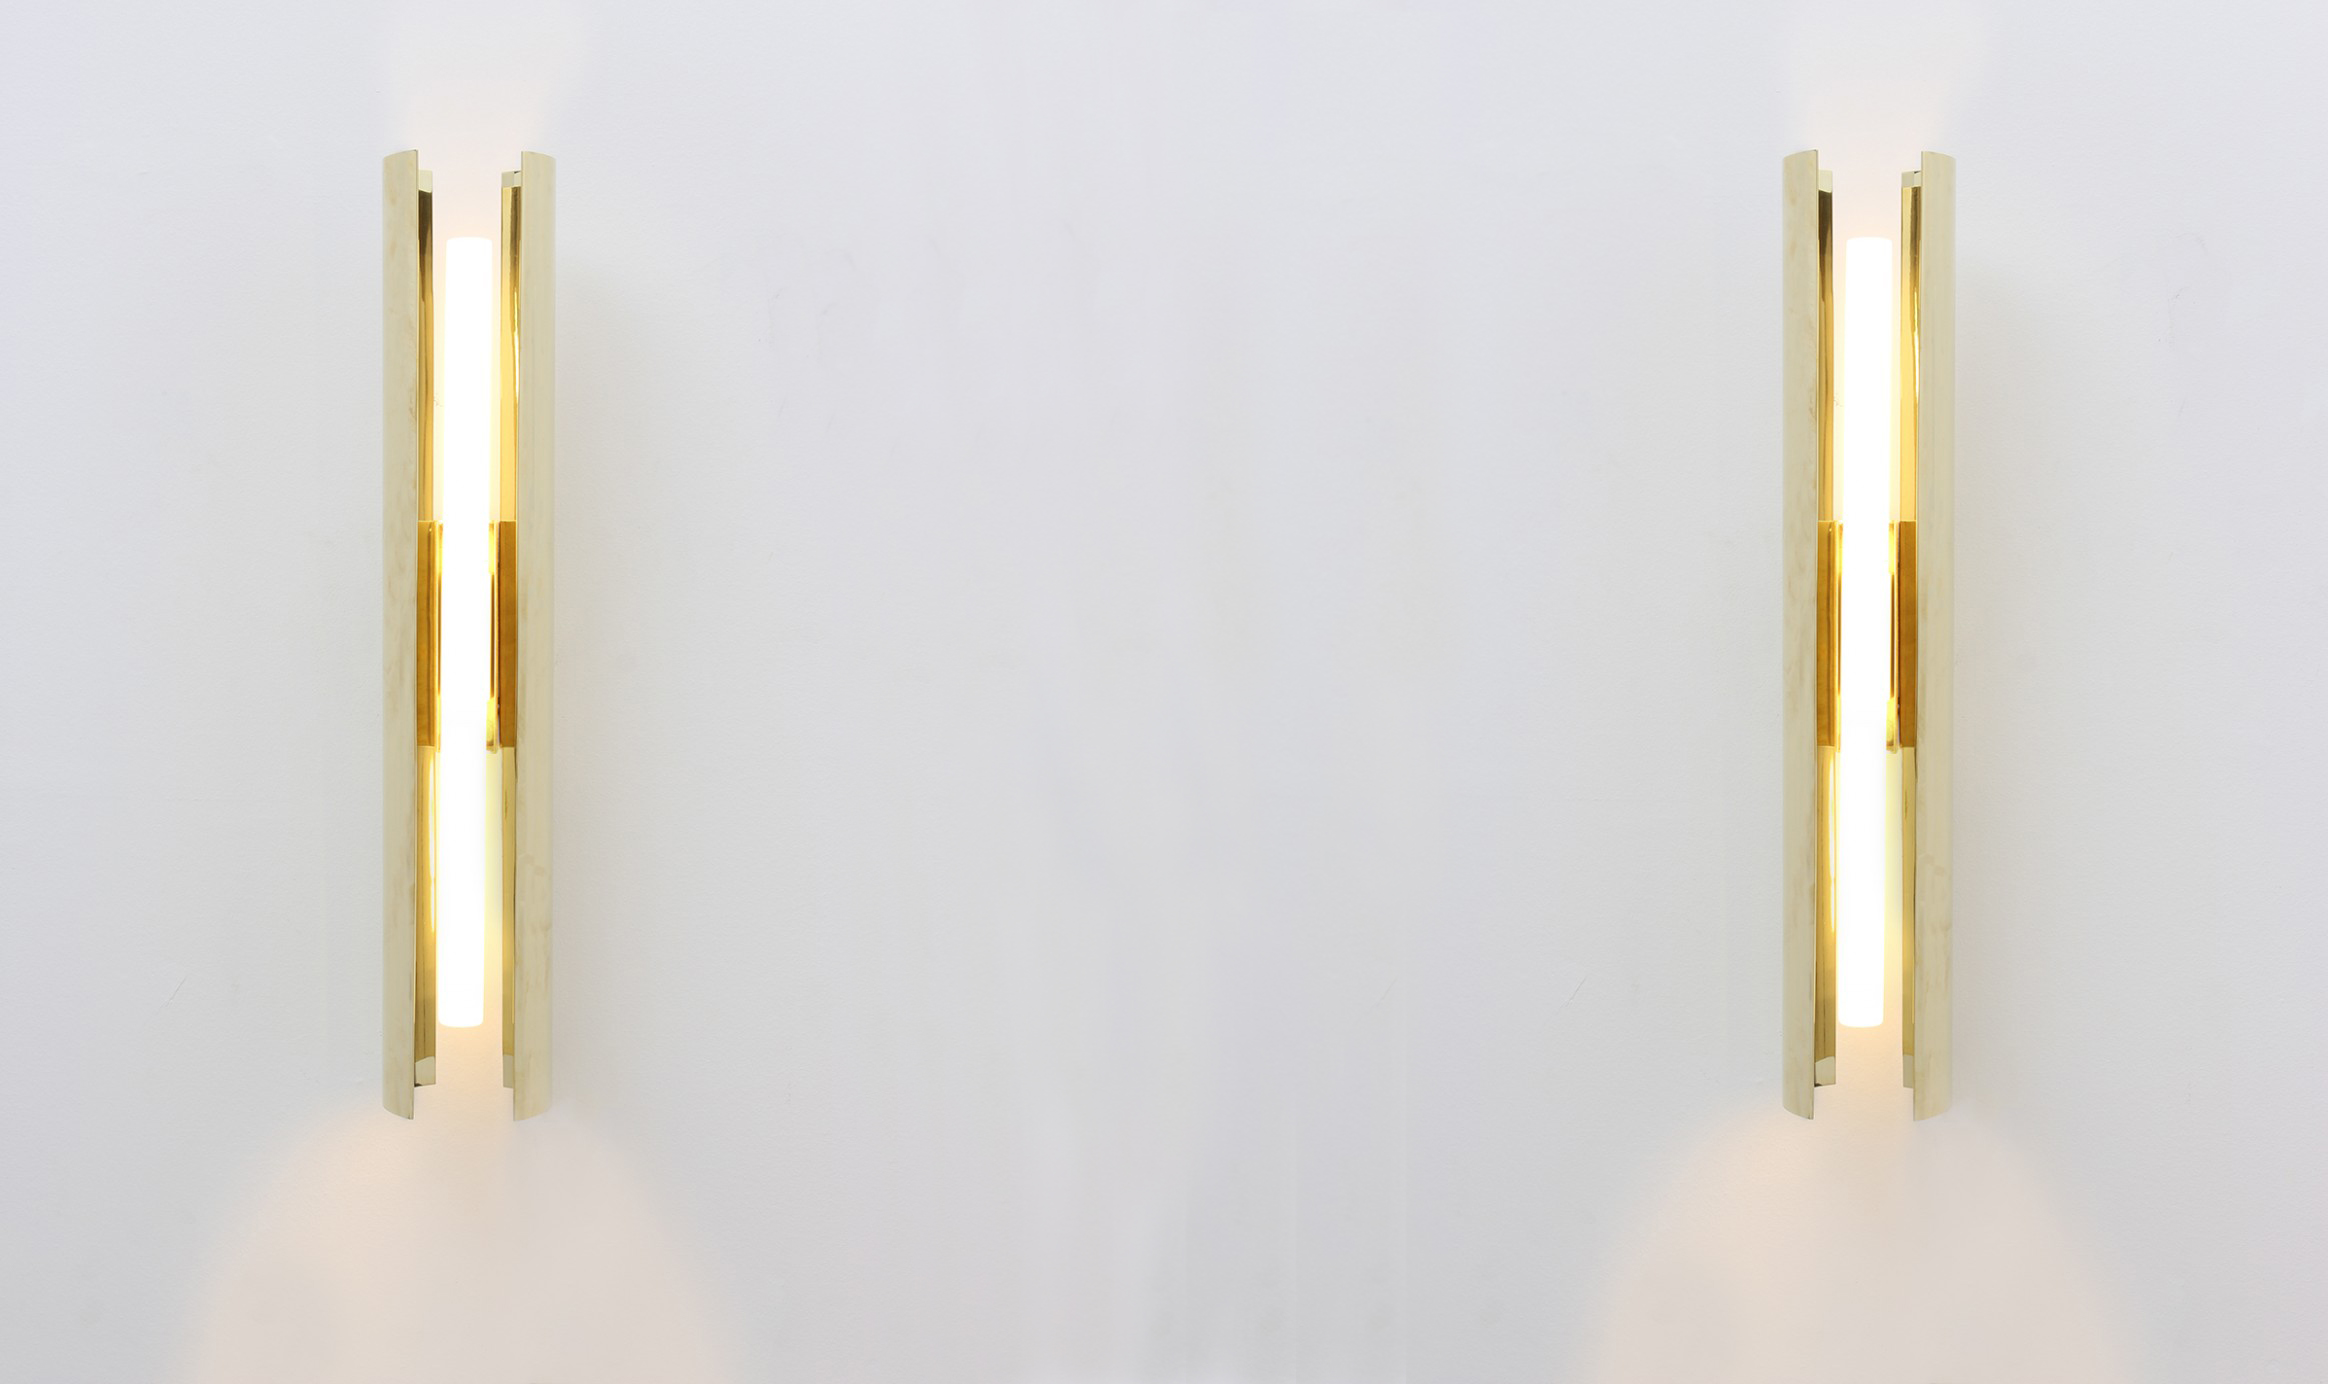 Bevilacqua Architects Scipioni Brass Wall Lamp